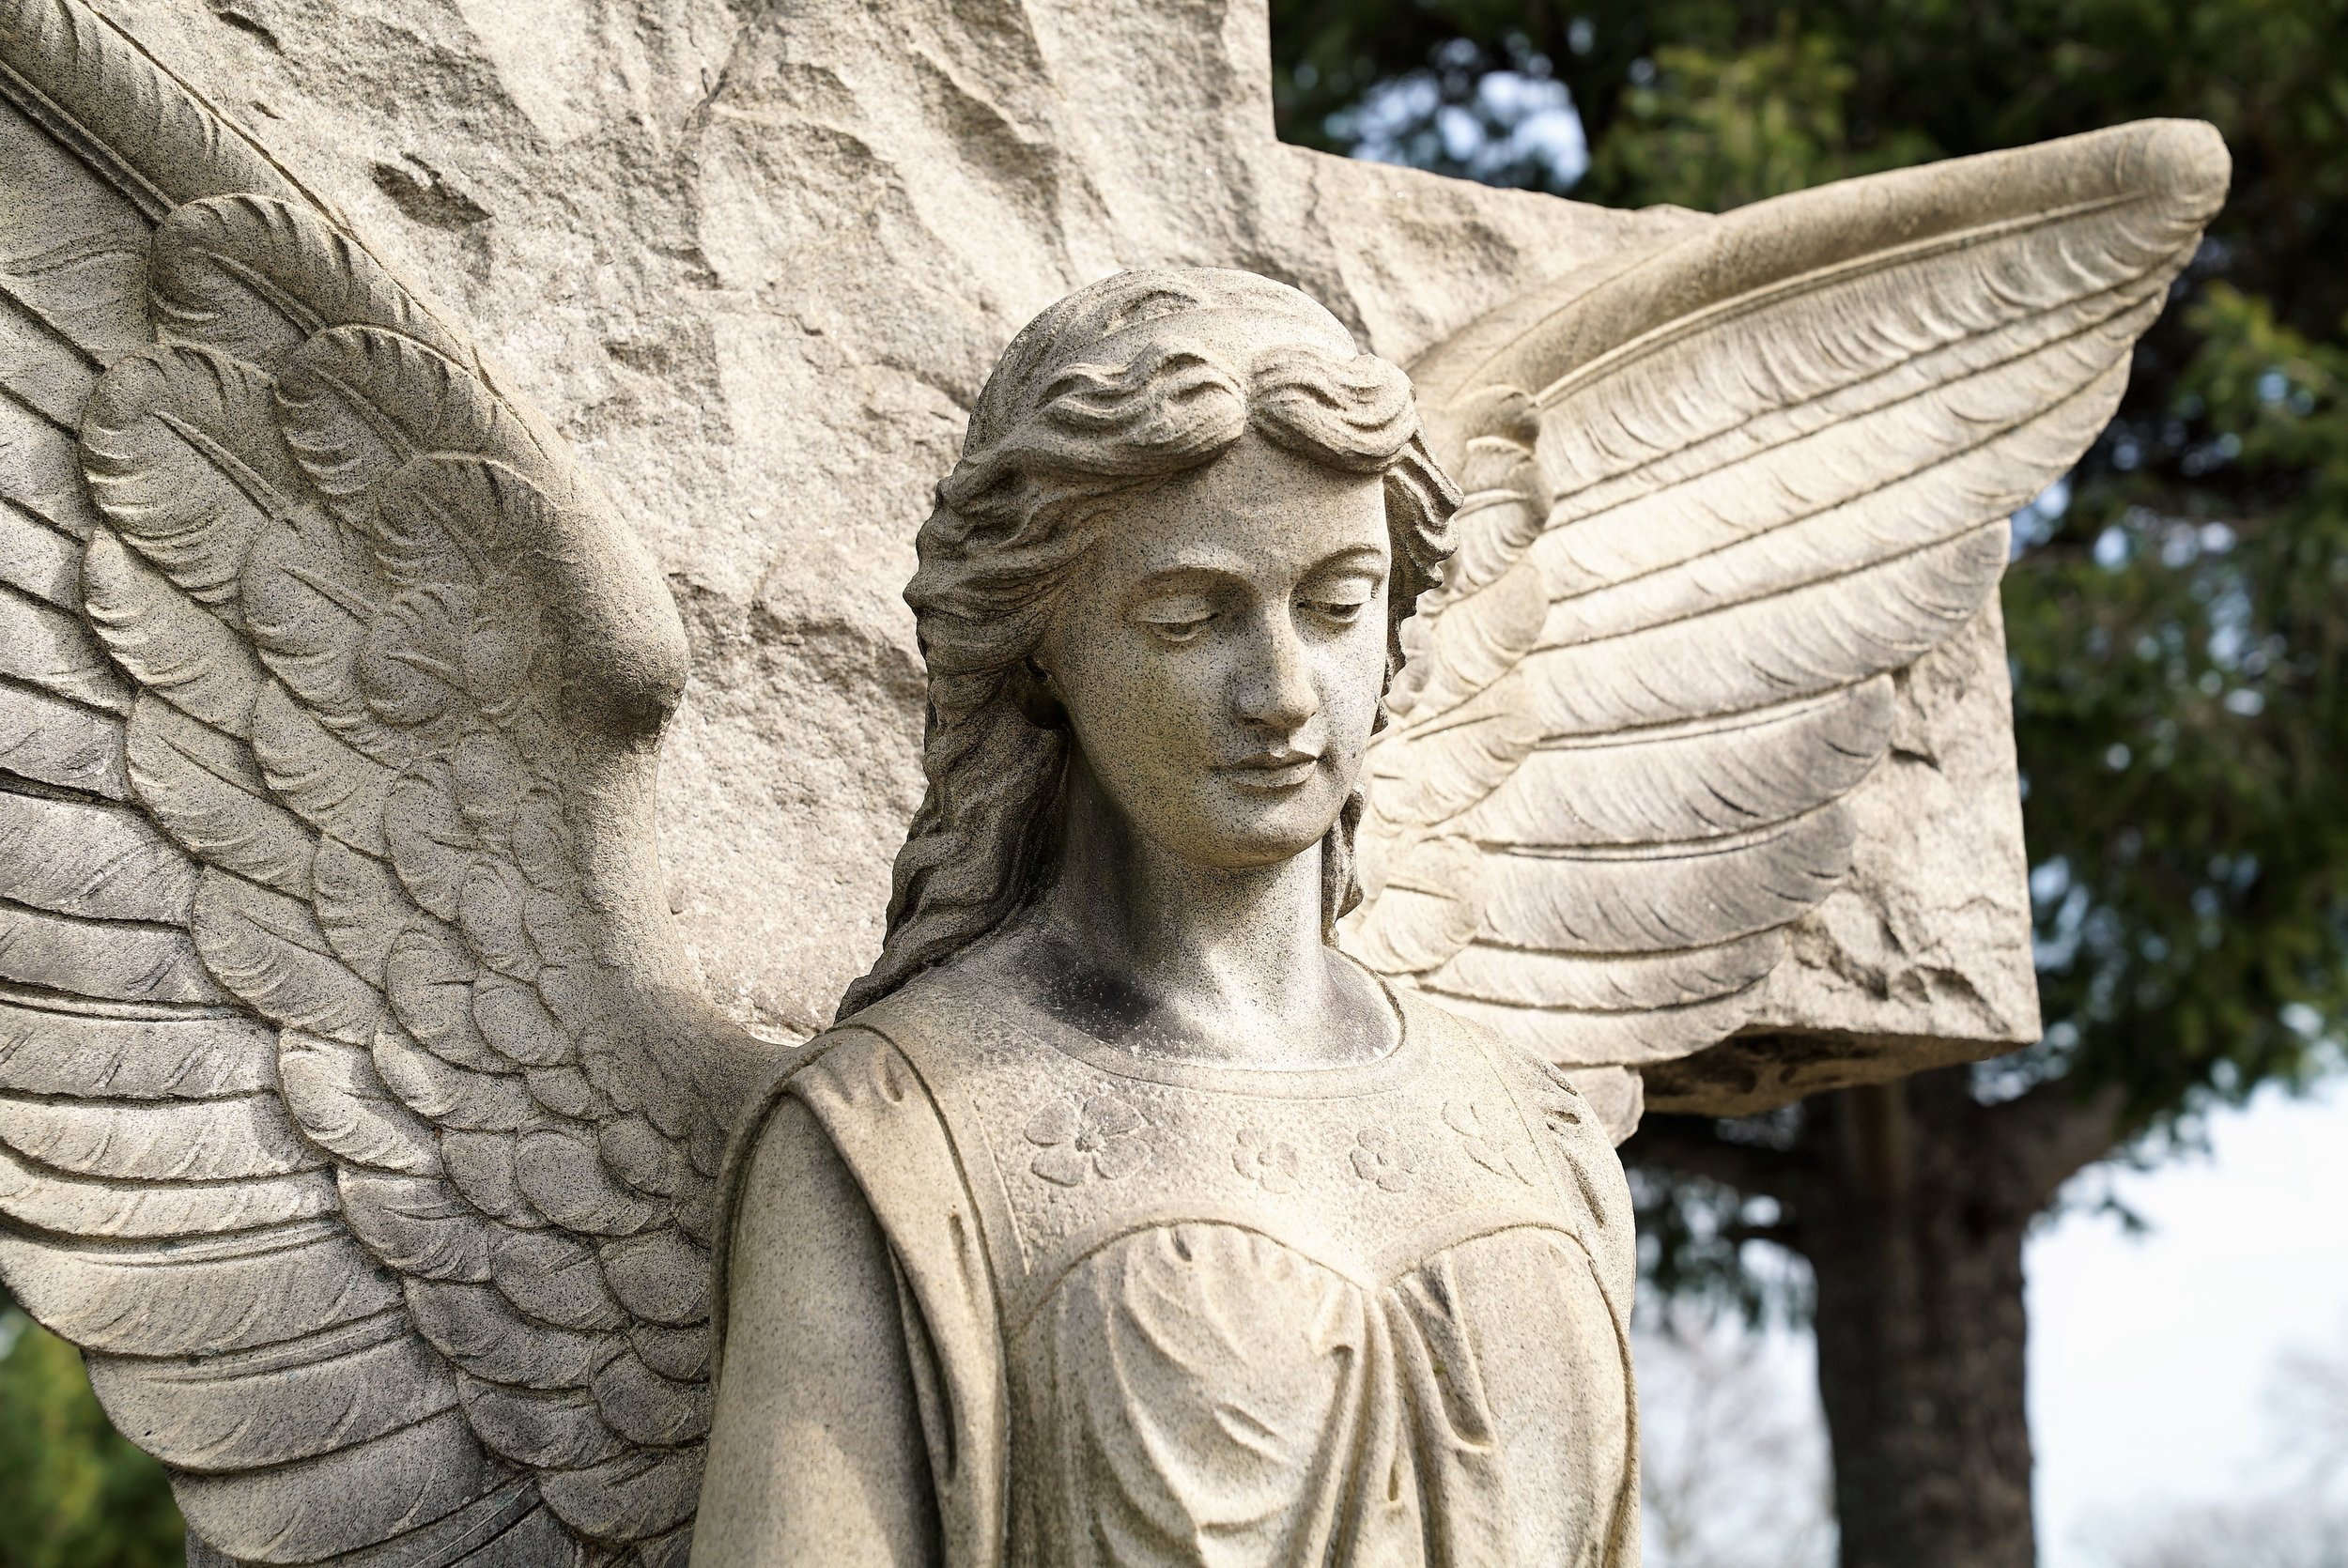 An elaborately carved angel stands over a grave at Holy Cross Cemetery. Yeadon, Pennsylvania.